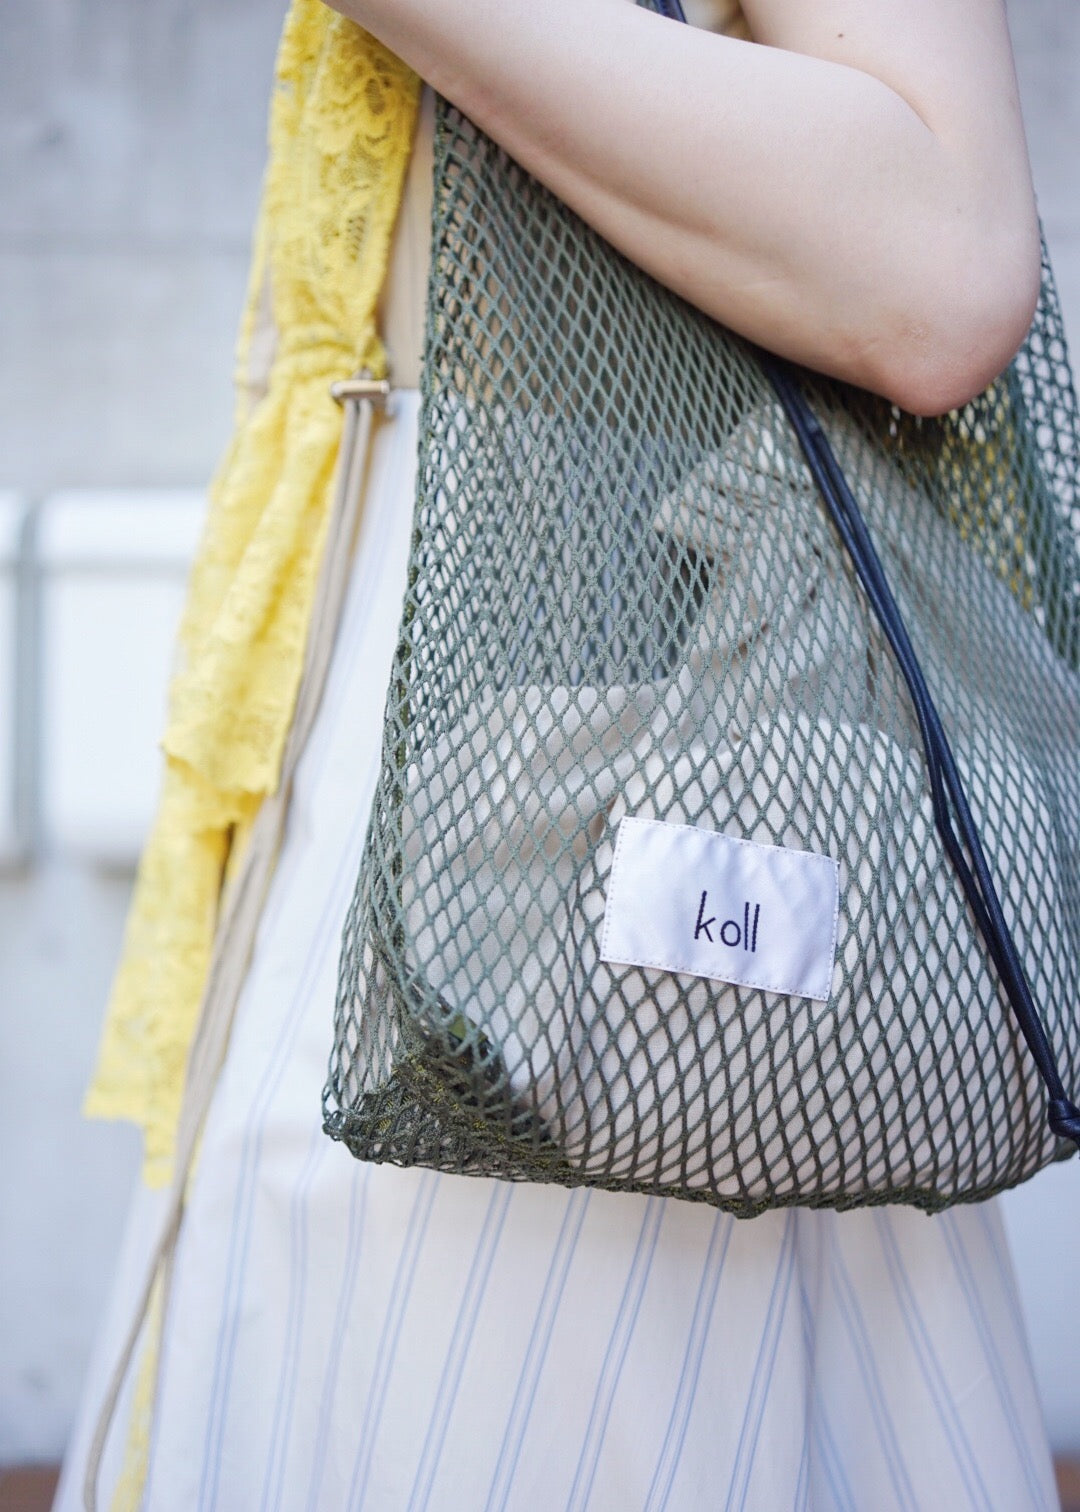 diamond mesh shopping bag [MossGreen×Beige]